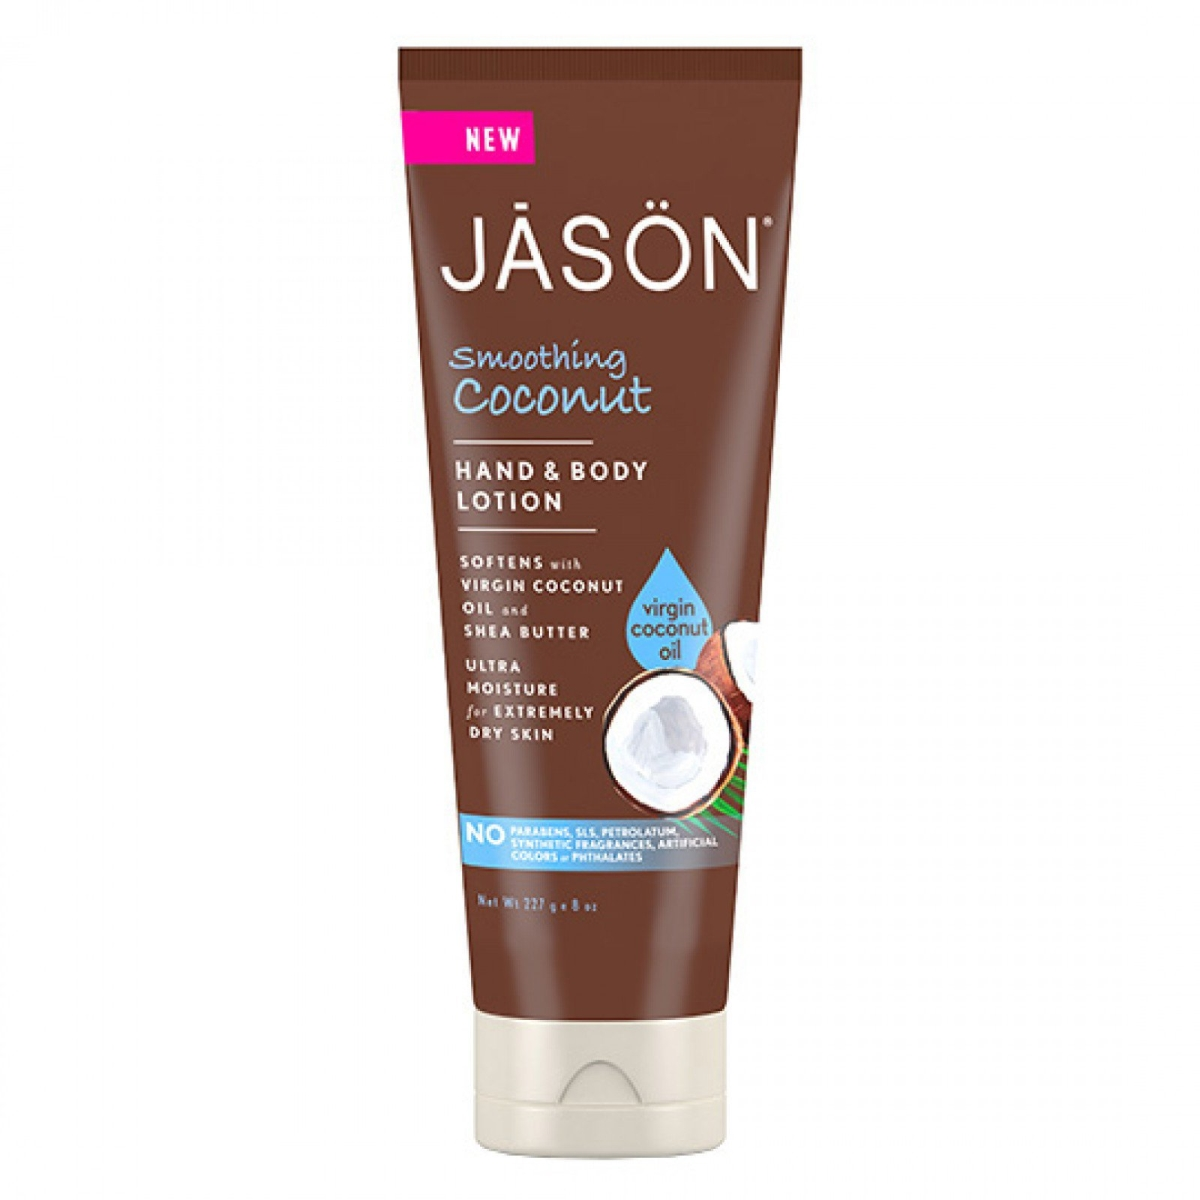 Frontier 230286 8 fl oz Jason Hand & Body Care Smoothing Coconut Lotions